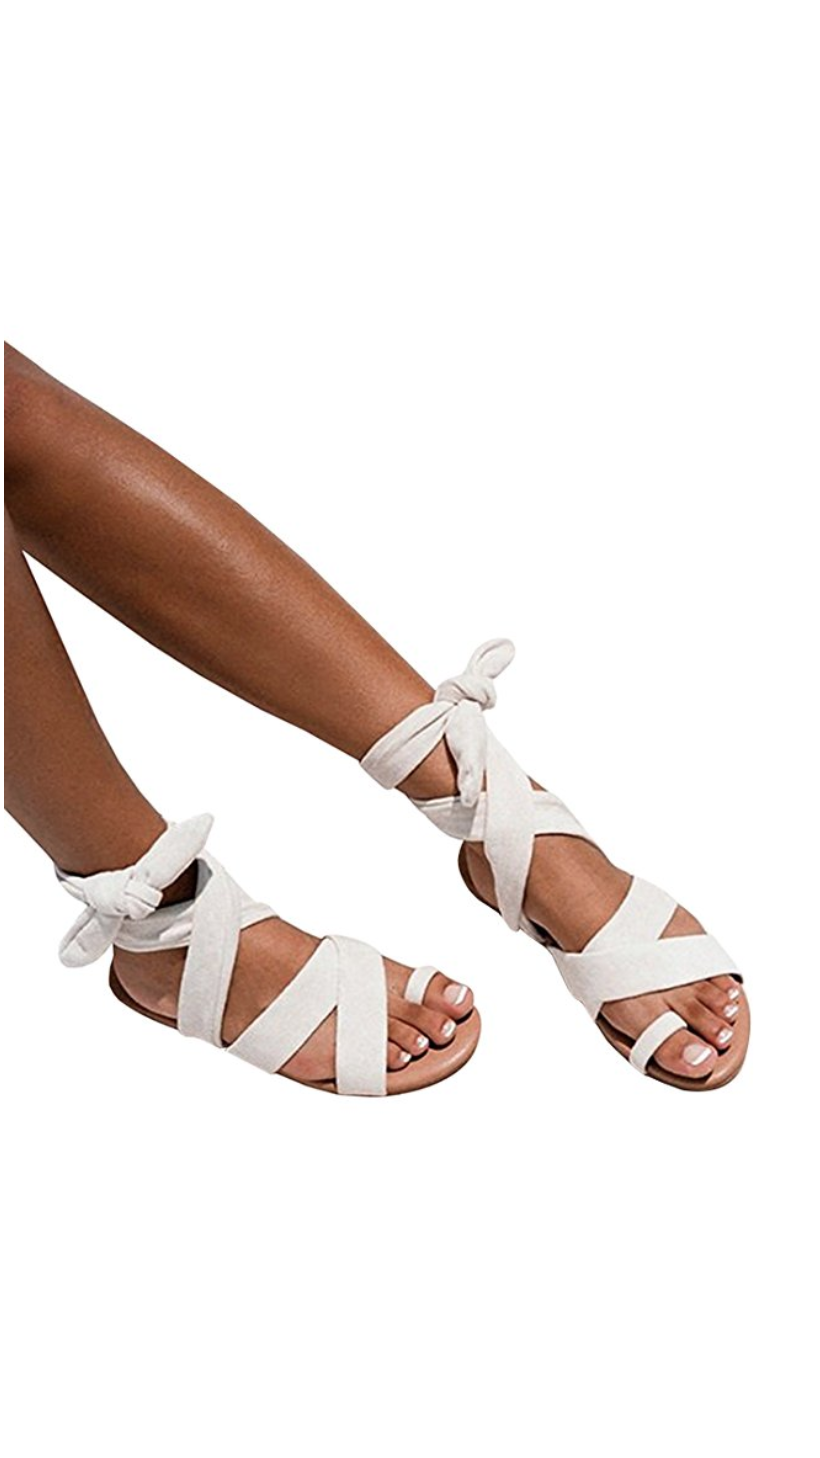 The Best Sandals to Buy on Amazon this